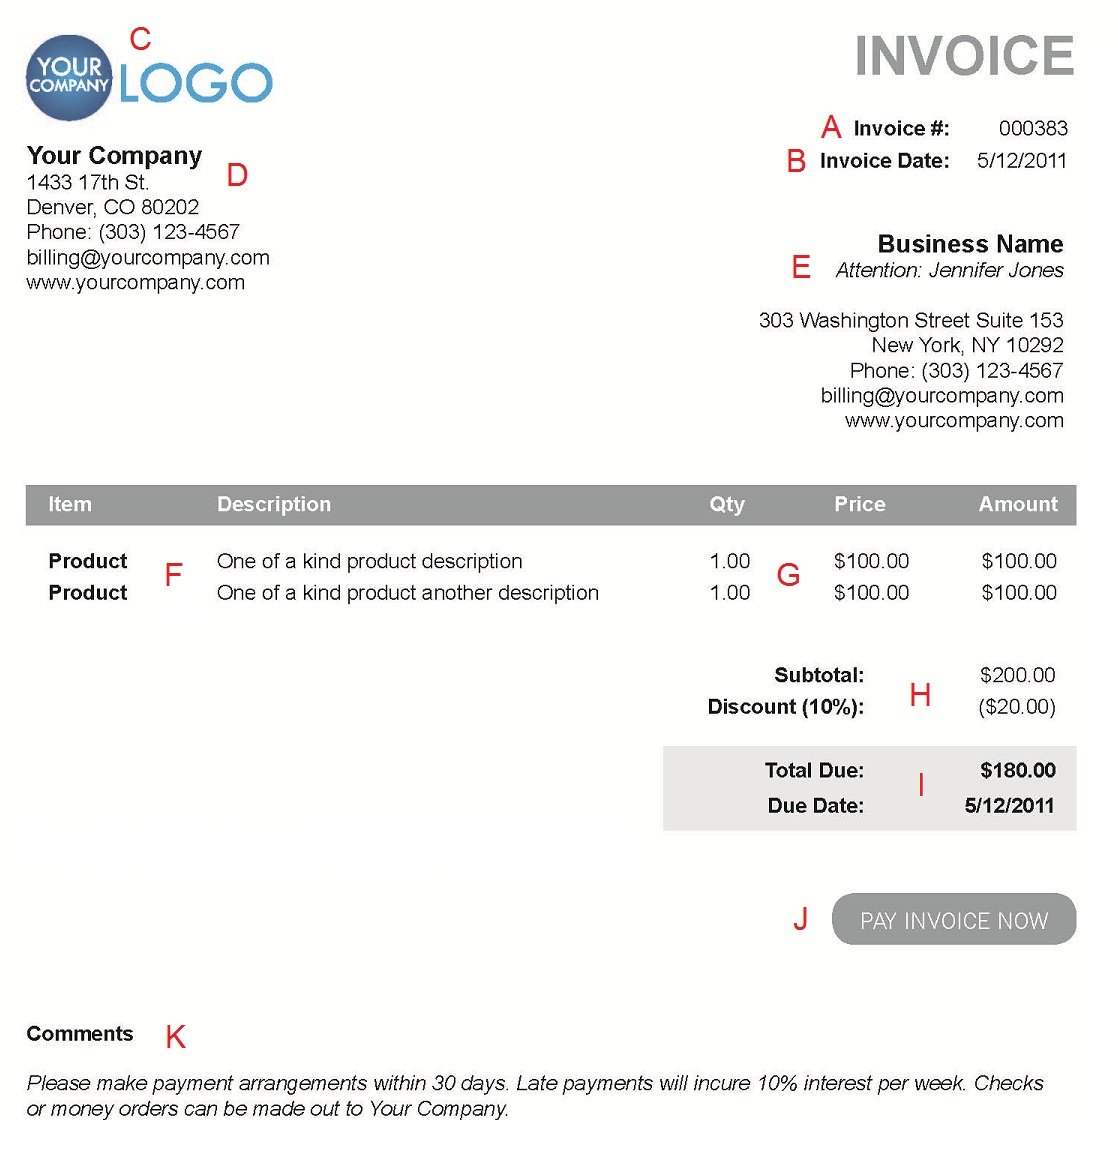 Occupyhistoryus  Outstanding The  Different Sections Of An Electronic Payment Invoice With Licious A  With Agreeable What Is Proforma Invoice In Business Also Payroll And Invoicing Software In Addition Invoice Spreadsheet And What Is A Supplier Invoice As Well As Vendor Invoice Portal Additionally Quickbooks Online Invoice From Paysimplecom With Occupyhistoryus  Licious The  Different Sections Of An Electronic Payment Invoice With Agreeable A  And Outstanding What Is Proforma Invoice In Business Also Payroll And Invoicing Software In Addition Invoice Spreadsheet From Paysimplecom